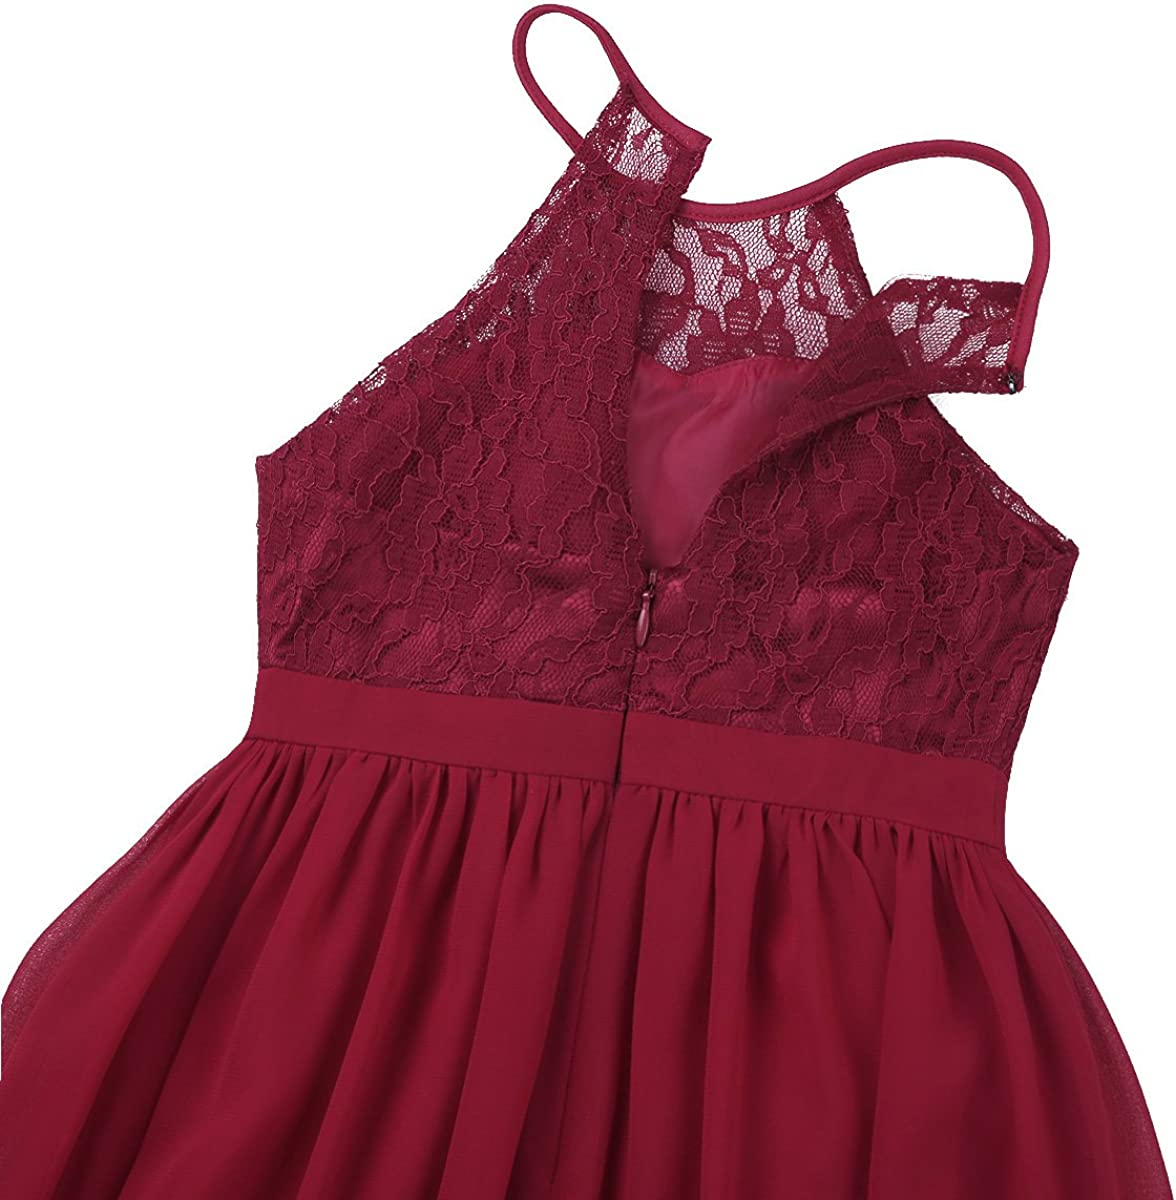 Girls Halter-Neck Floral Lace Junior Bridesmaid Dress Party Wedding Pageant Gown